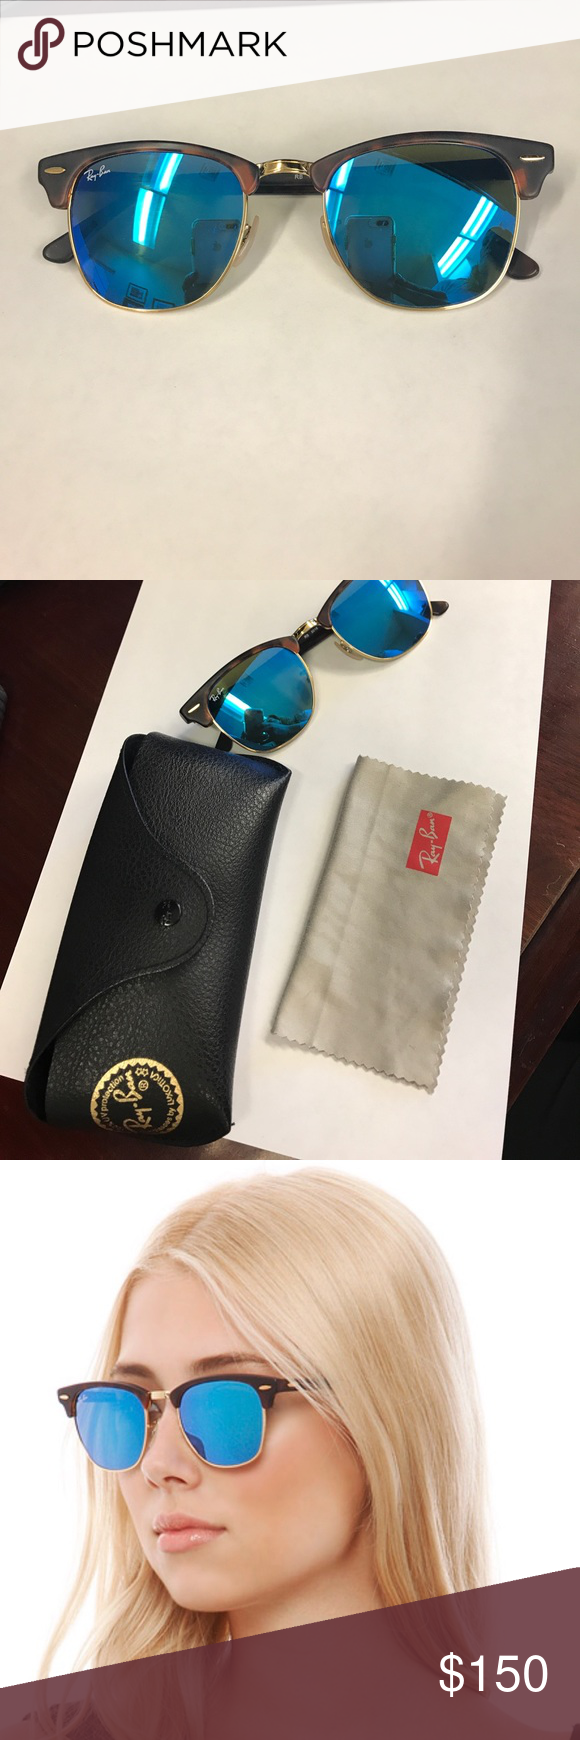 10a188bb46ed8d Ray-Ban Clubmaster Flash Lenses Ray-Ban Clubmaster Flash Lenses in Tortoise  Blue Flash